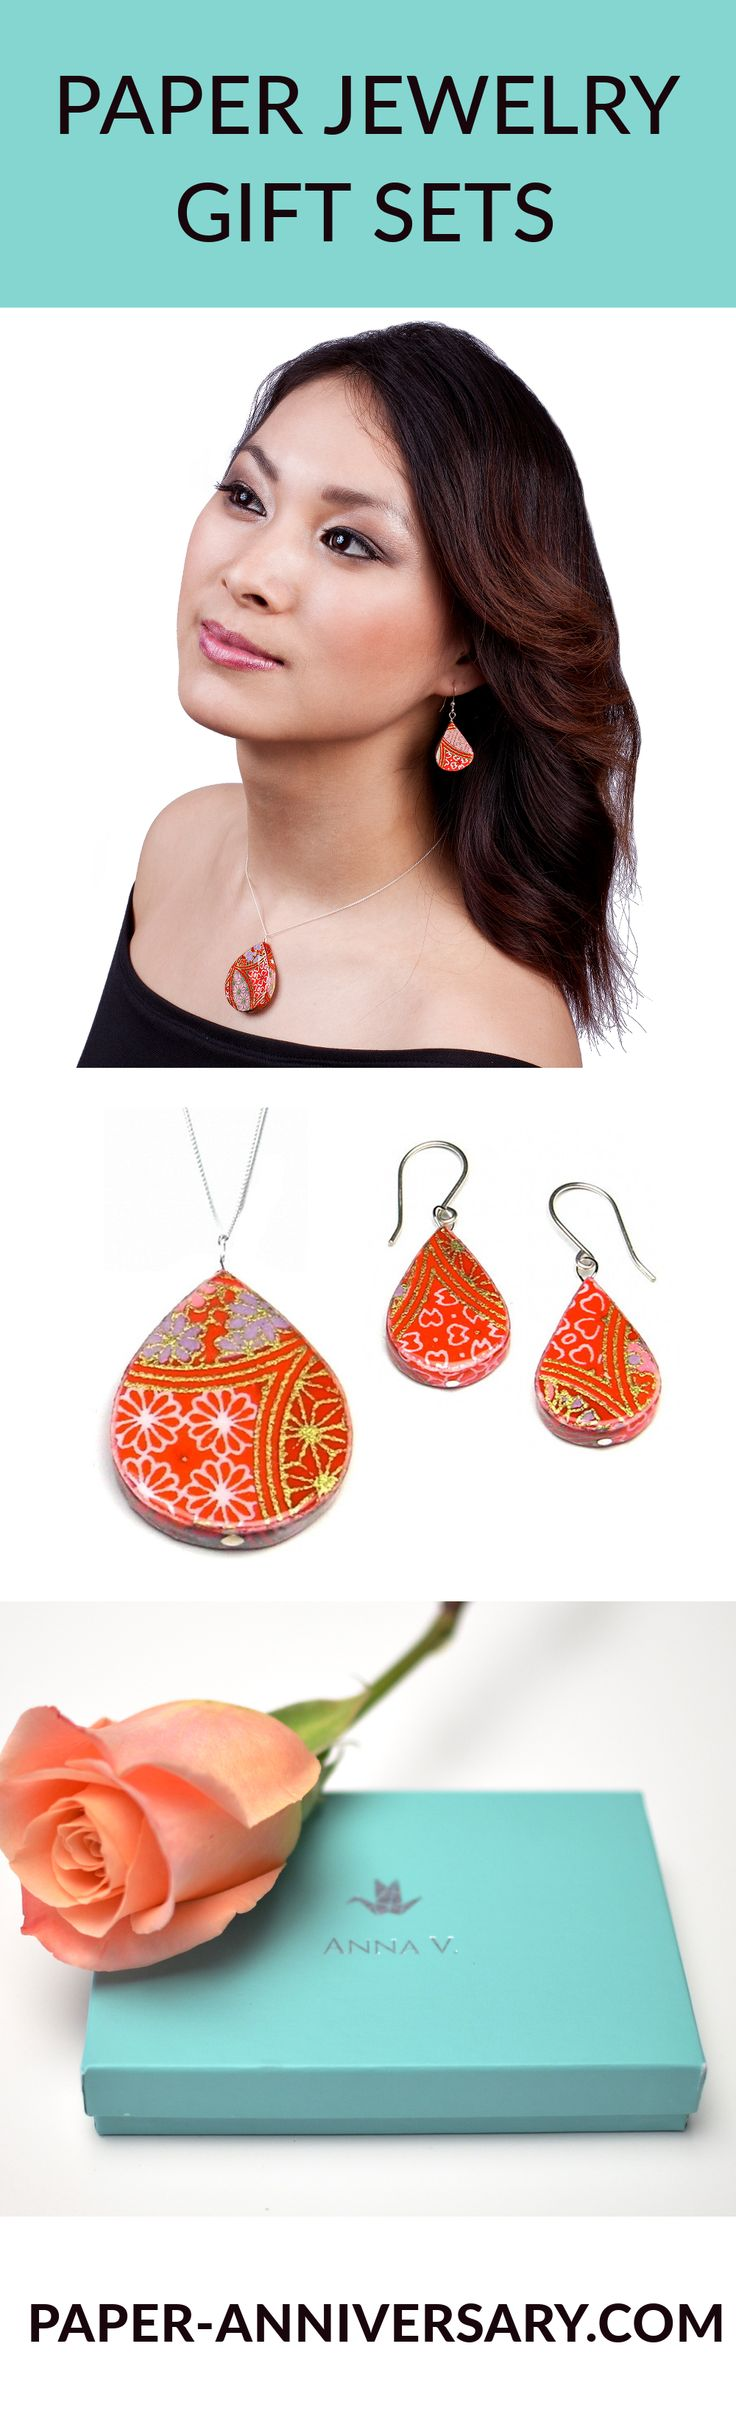 The traditional first anniversary gift is PAPER! Glazed paper jewelry sets are a unique, romantic first anniversary gift for her. Made from exotic papers from all around the world. Gift sets include earrings, necklace, card, gift box & a description of the unique paper it's made from. 2-Day Shipping. -- Make Your First Anniversary Memorable!